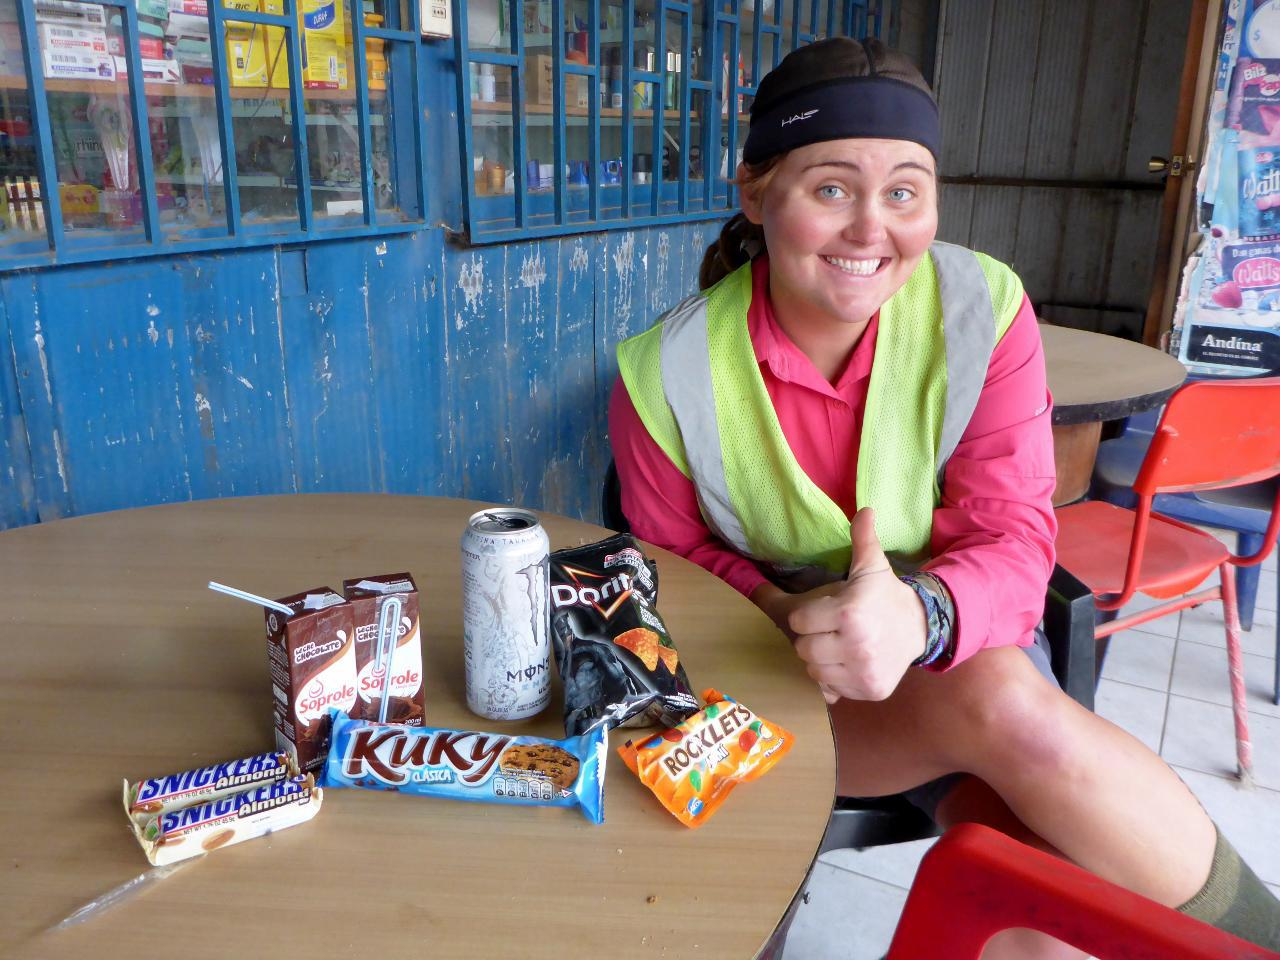 A break spot. A senor came out of the market and gave us each a Snickers bar. He said we would need it for the road ahead.